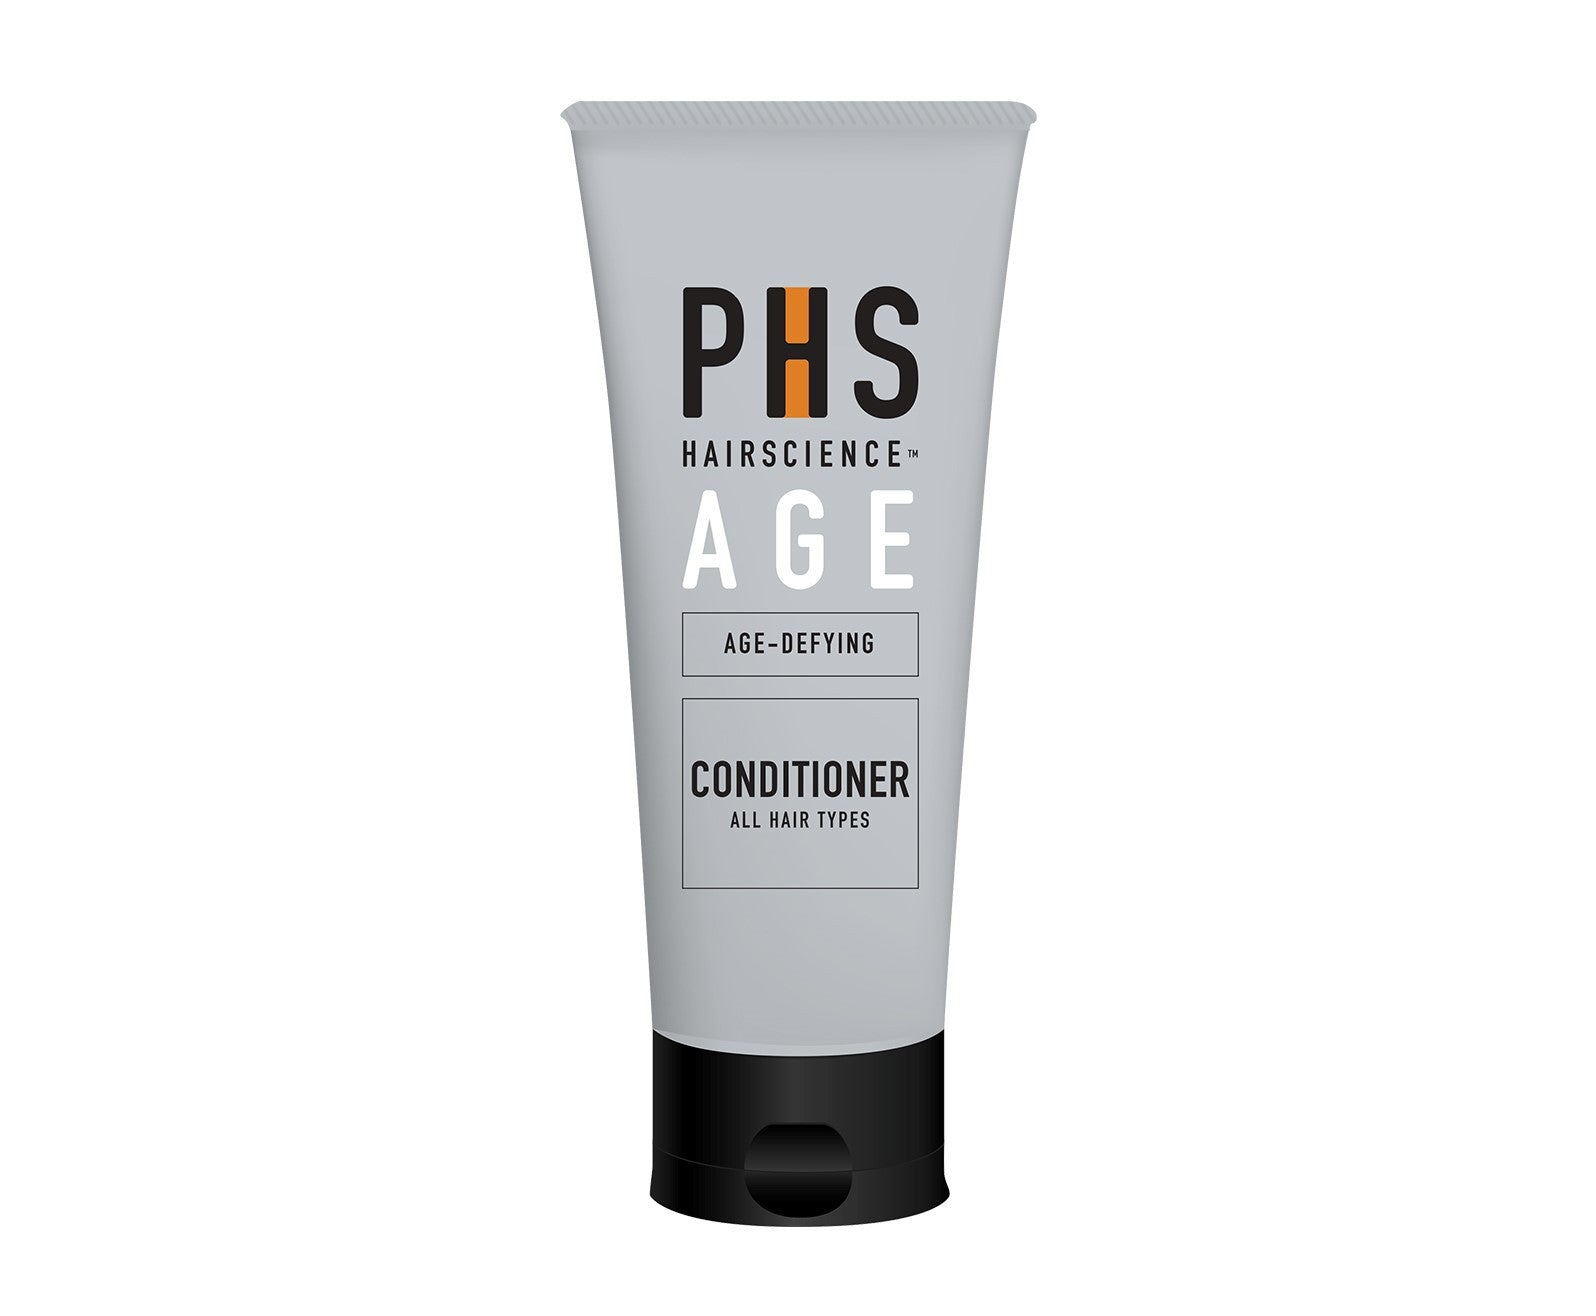 AGE-Defying Conditioner